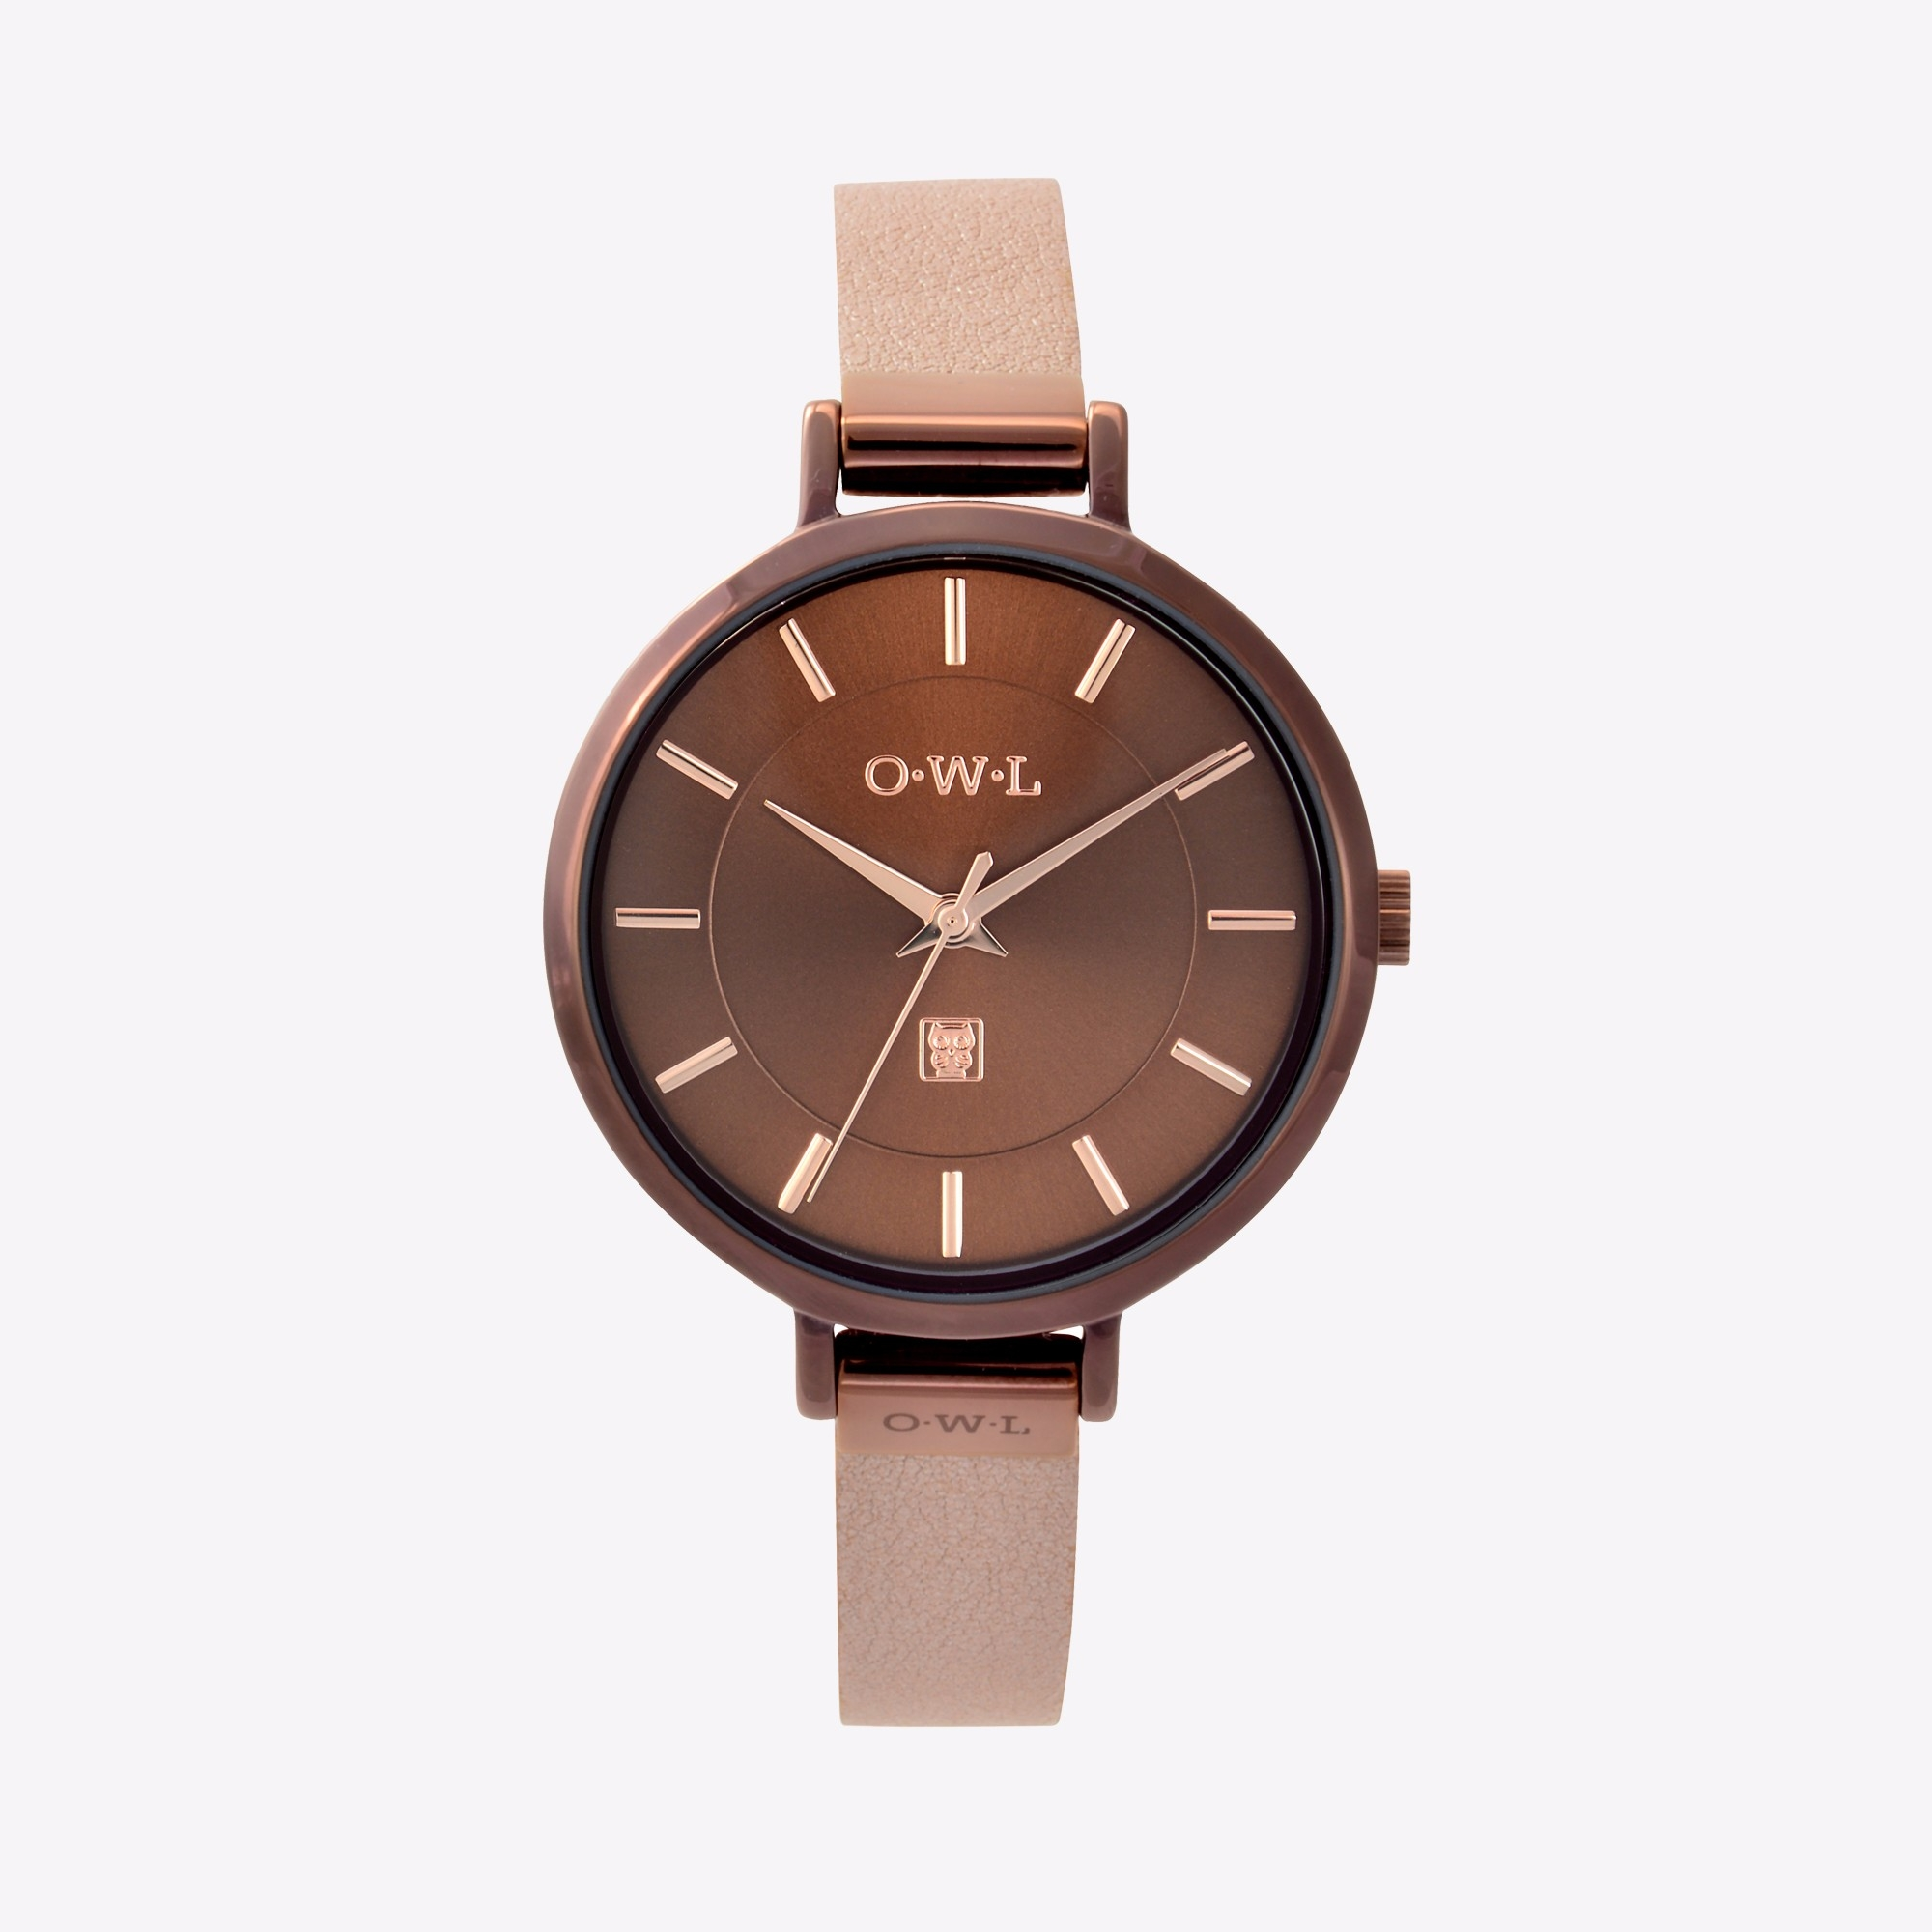 the mayfair watch in rose gold